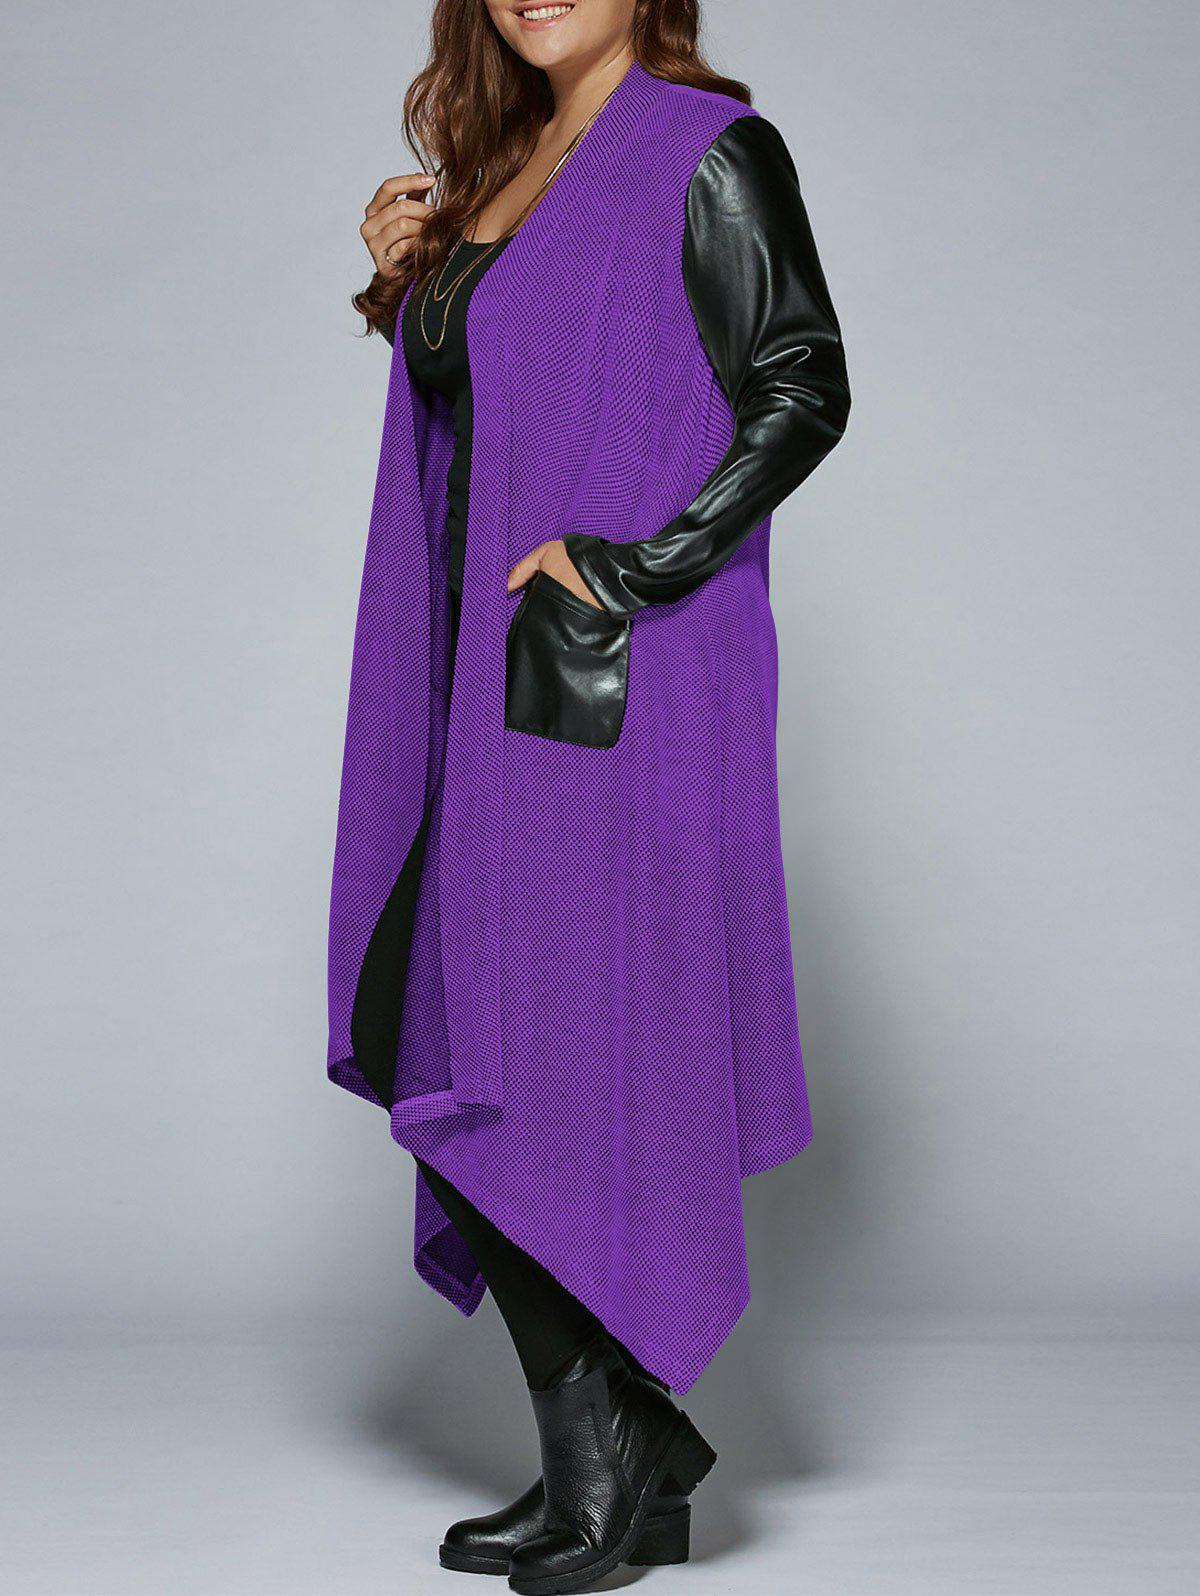 Plus Size PU Leather Trim Longline Asymmetrical CoatWOMEN<br><br>Size: 5XL; Color: PURPLE; Clothes Type: Trench; Material: Rayon; Type: Asymmetric Length; Shirt Length: Long; Sleeve Length: Full; Collar: Collarless; Pattern Type: Solid; Embellishment: Pockets; Style: Fashion; Season: Fall,Spring; Weight: 0.5160kg; Package Contents: 1 x Coat;